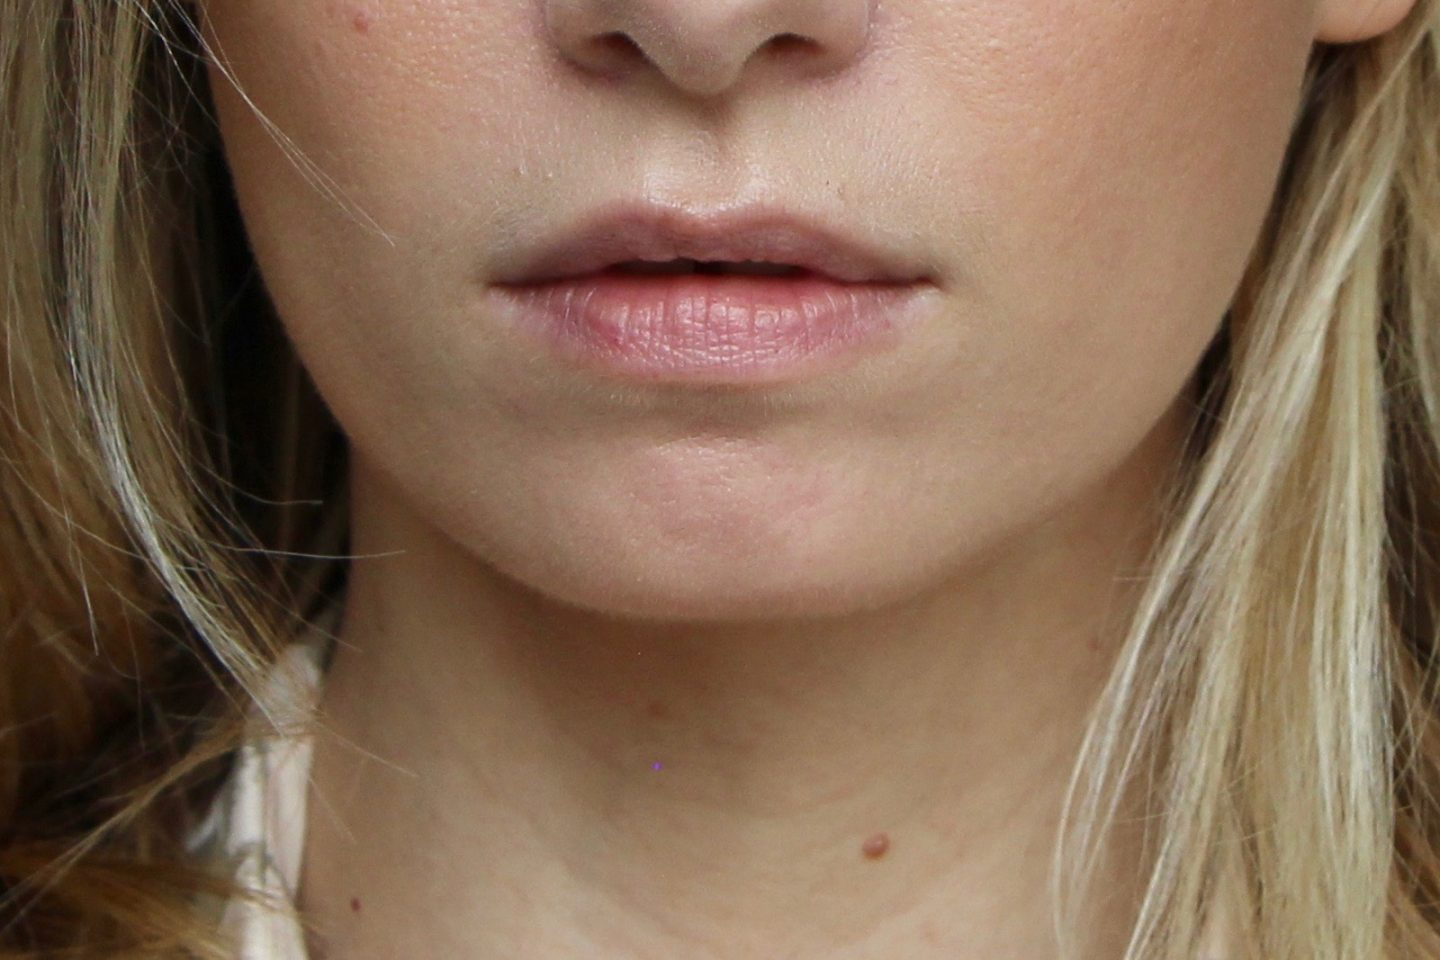 Does Lip Liner Make A Difference?